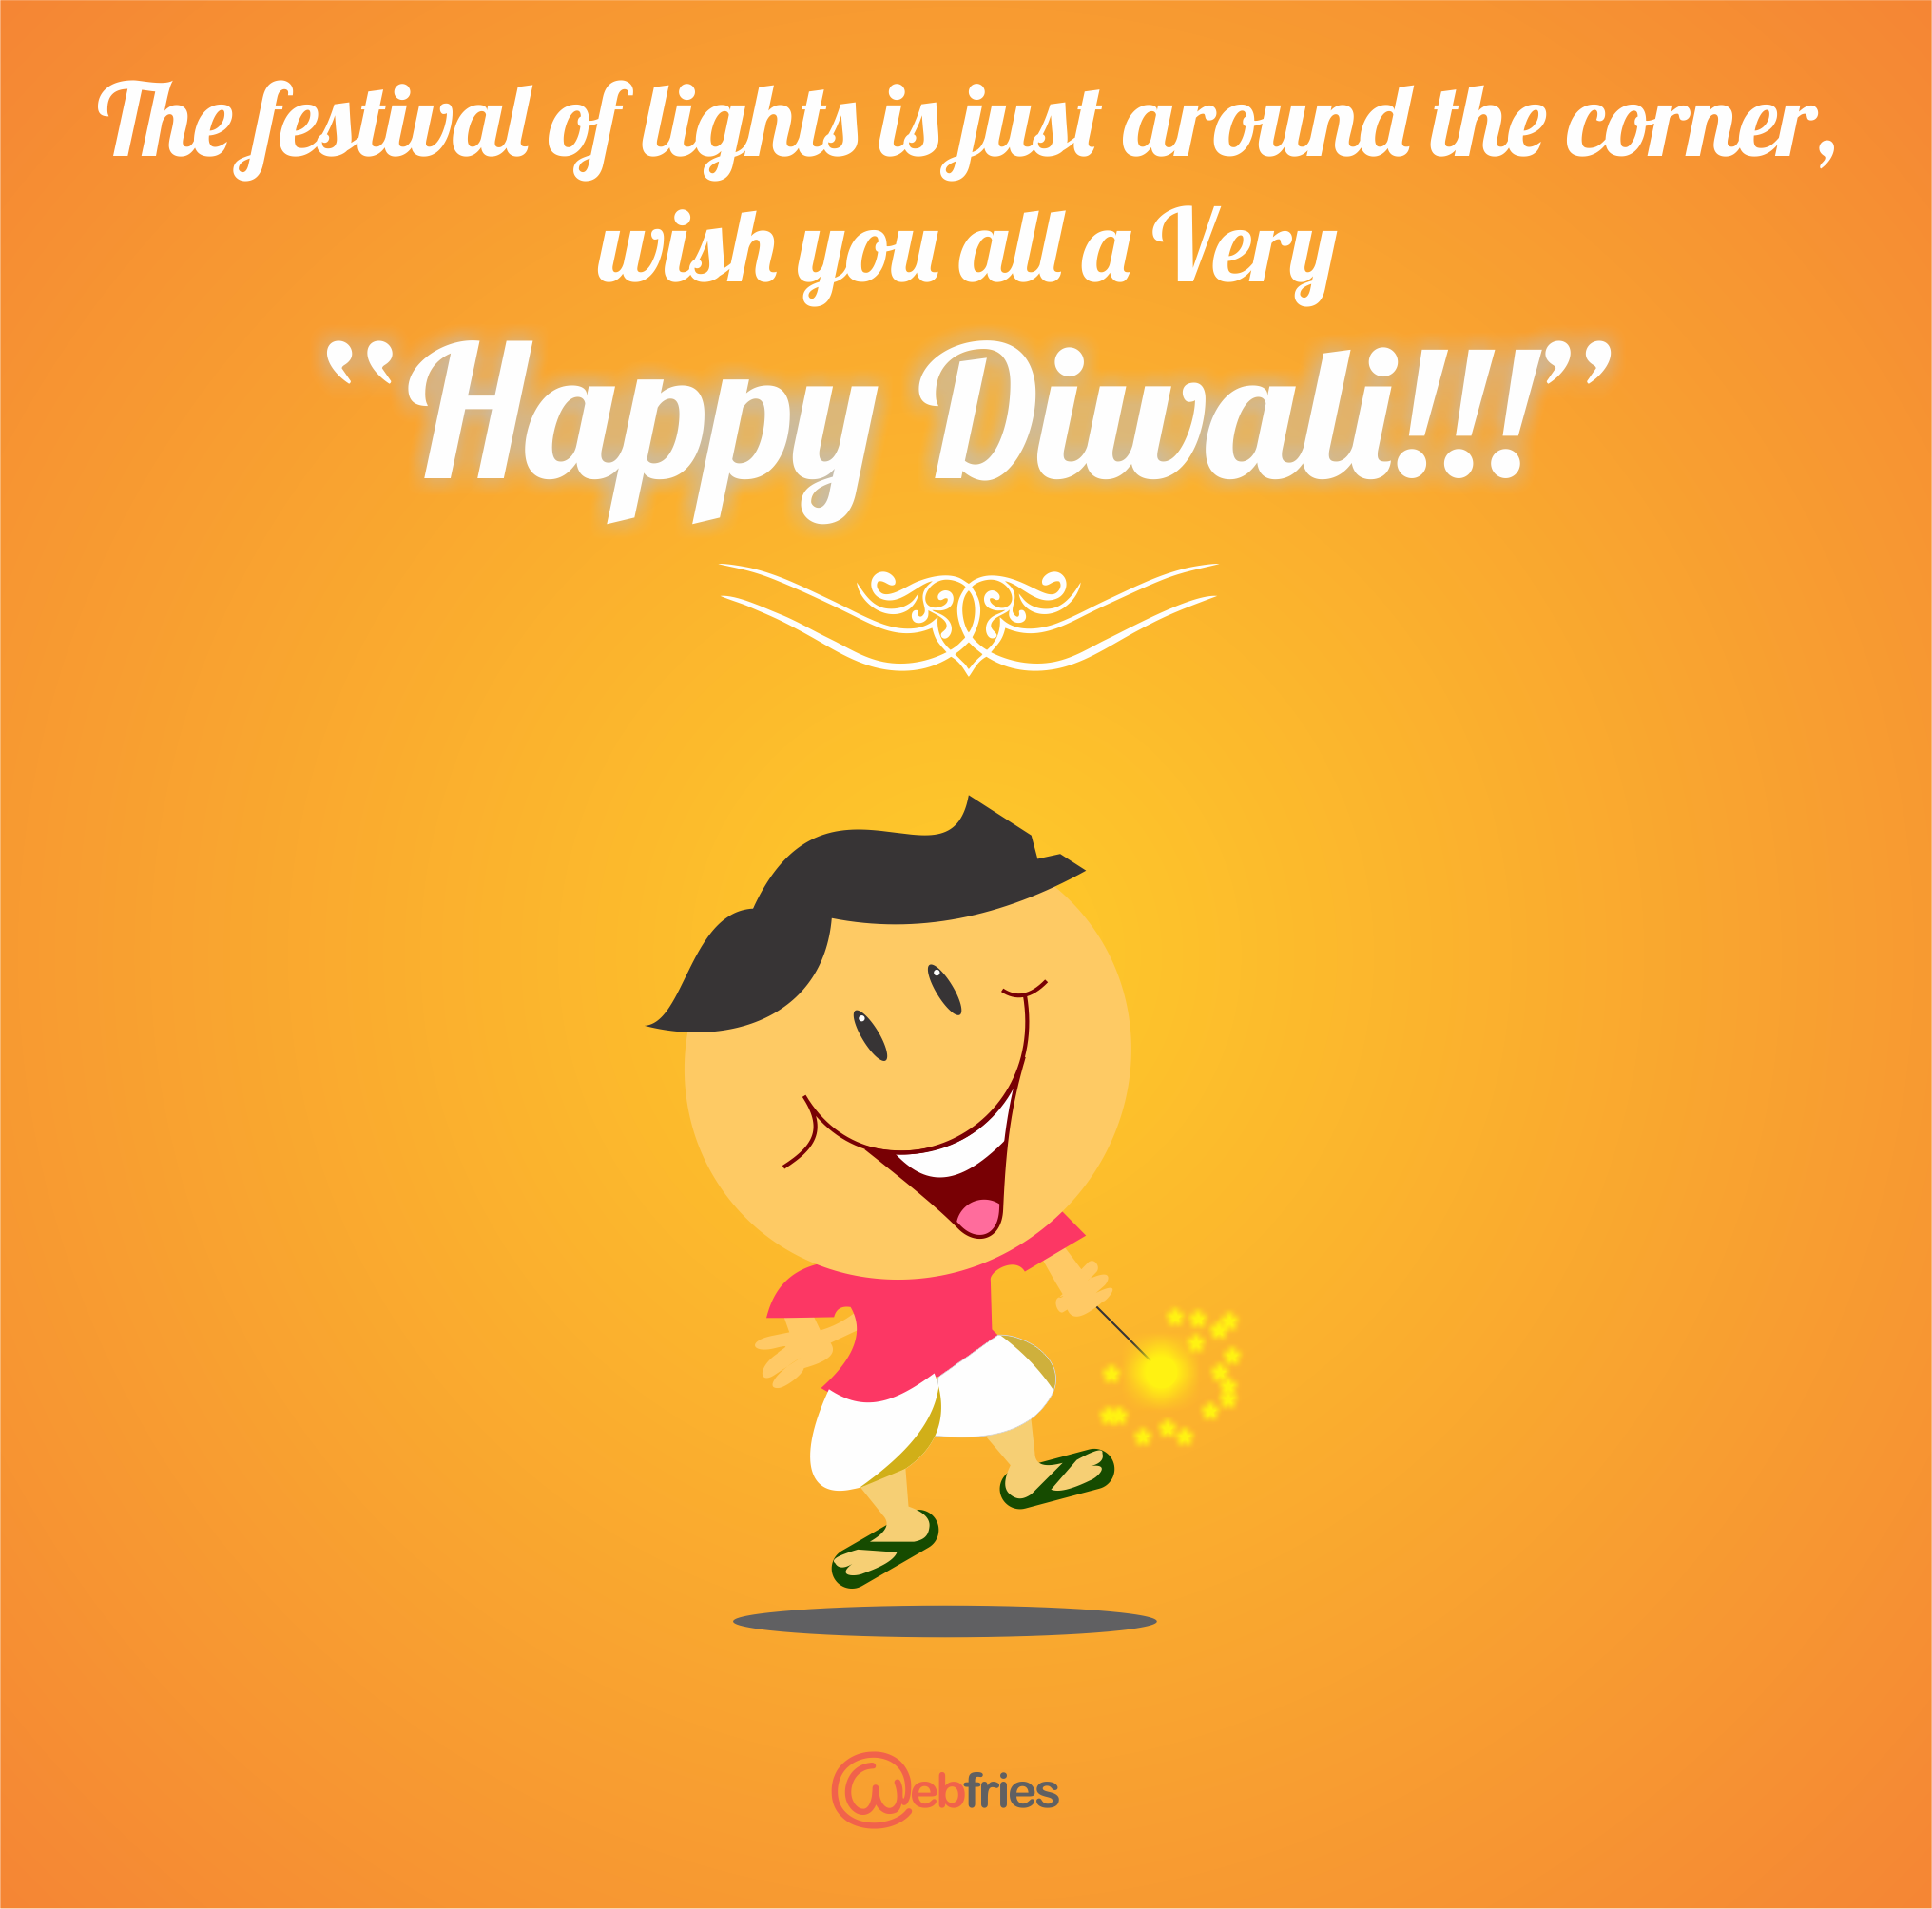 Diwali is a synonym for happiness prosperity new beginnings diwali is a synonym for happiness prosperity new beginnings webfries wishes all m4hsunfo